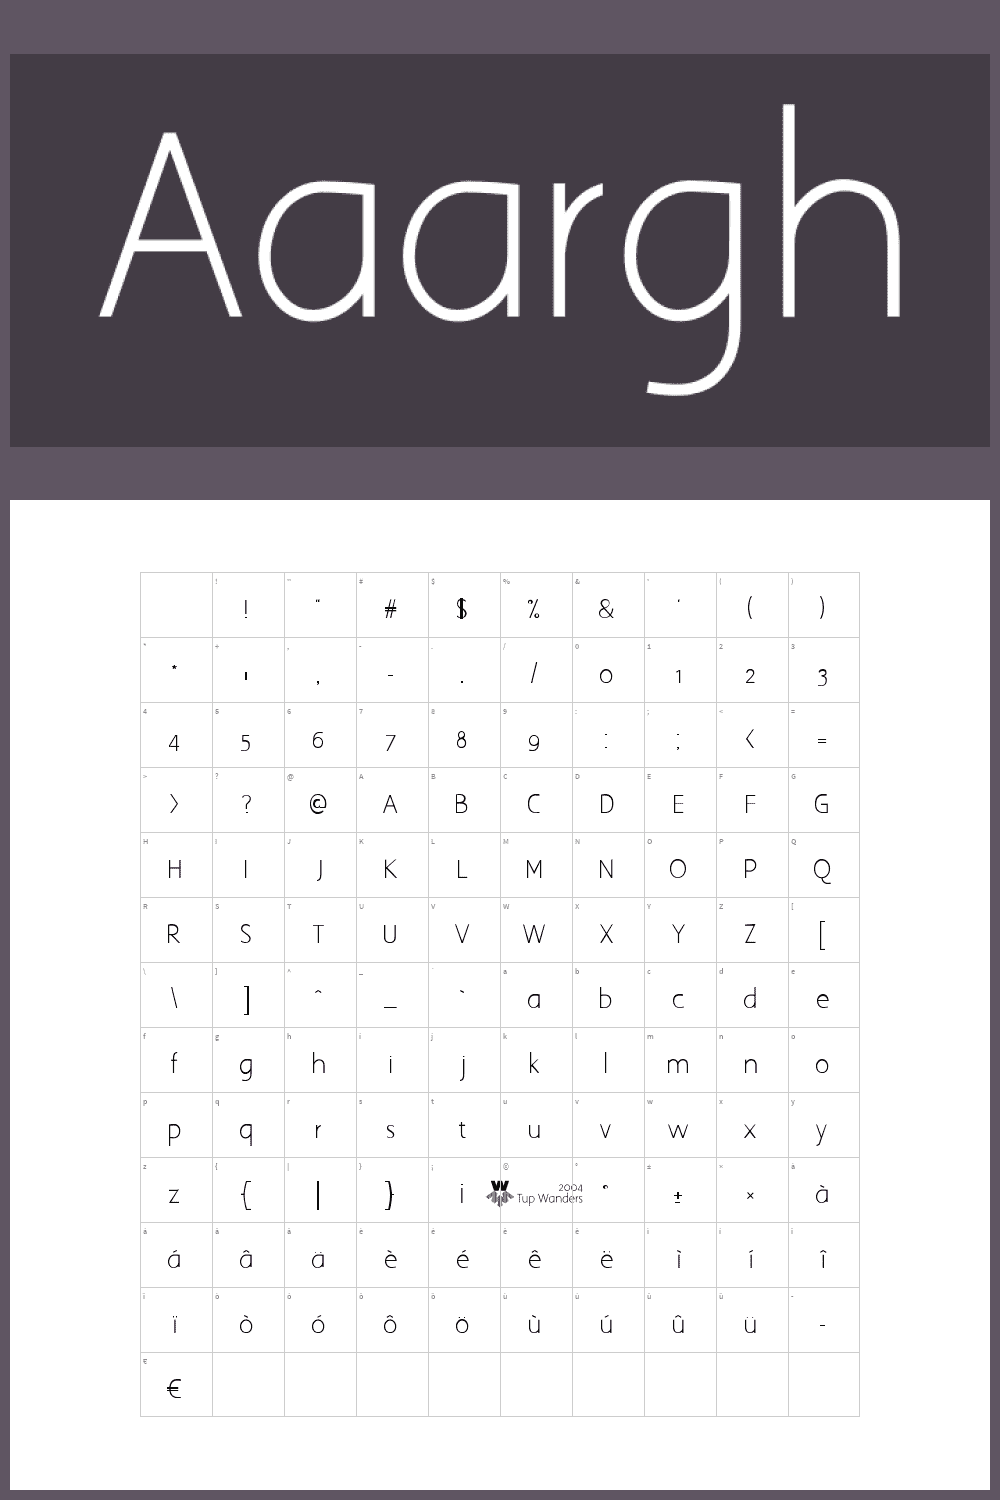 A simple typeface with no distinctive features.